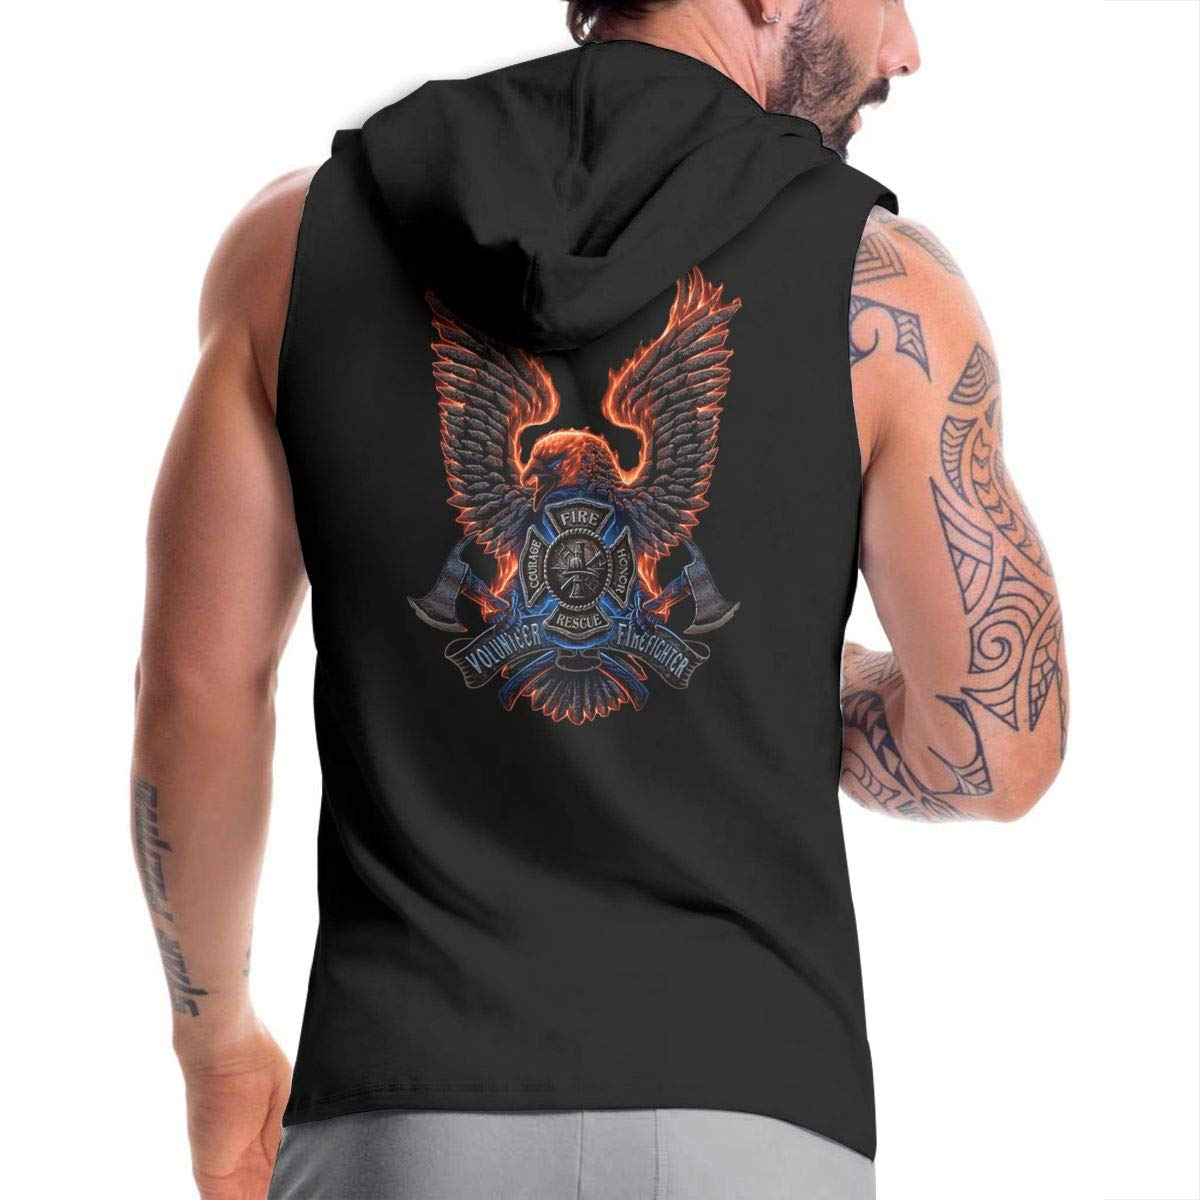 Ice-Long Out X American Firefighter Bravery Respect Tradition Mens Fashion Sleeveless Zip-up Hoodie Black with Pocket